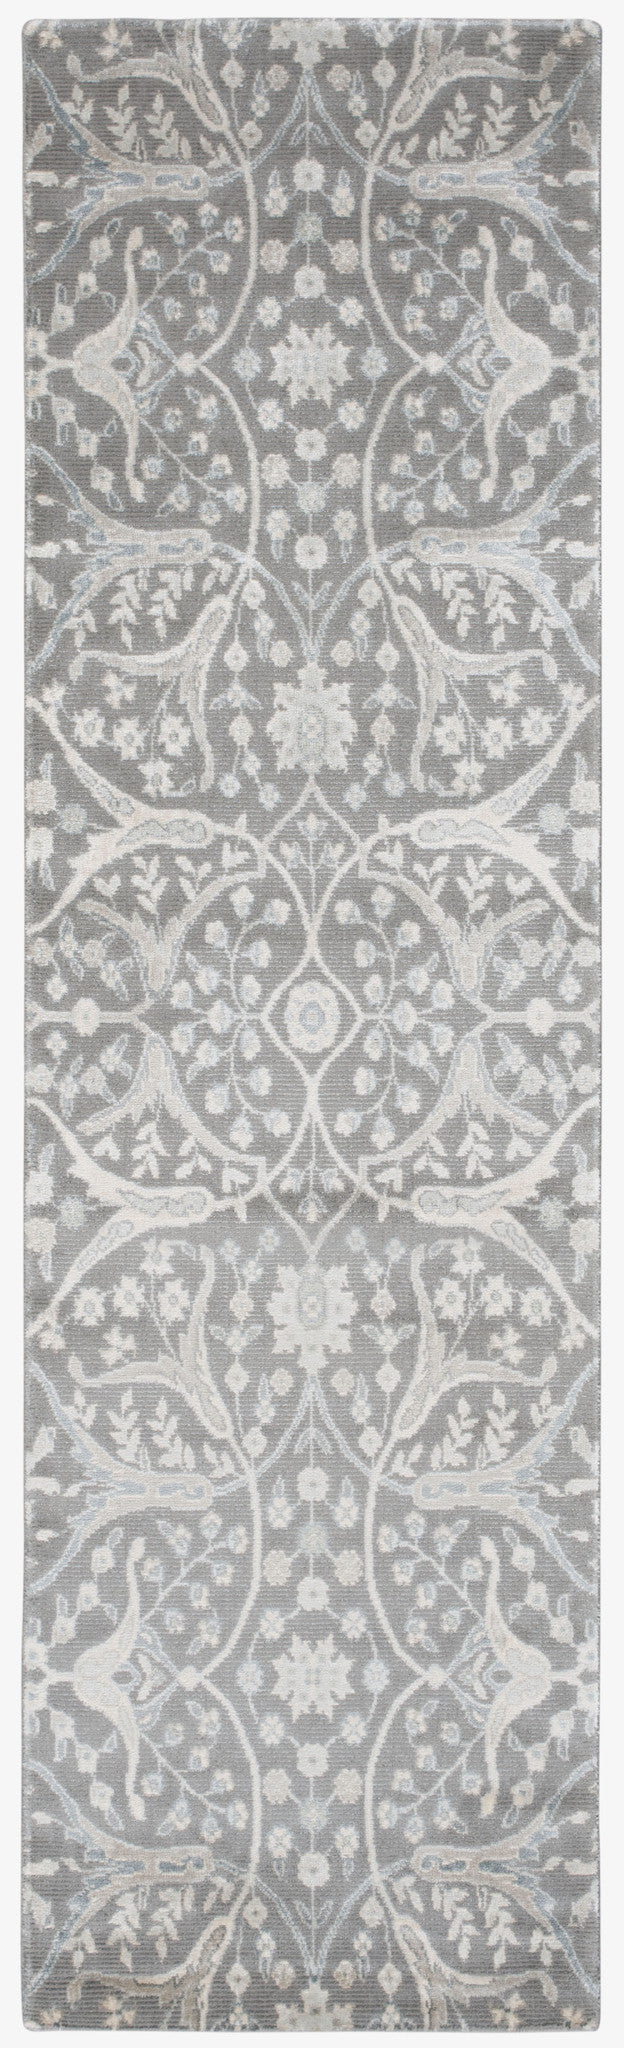 Nourison Luminance Steel Area Rug LUM08 STEEL